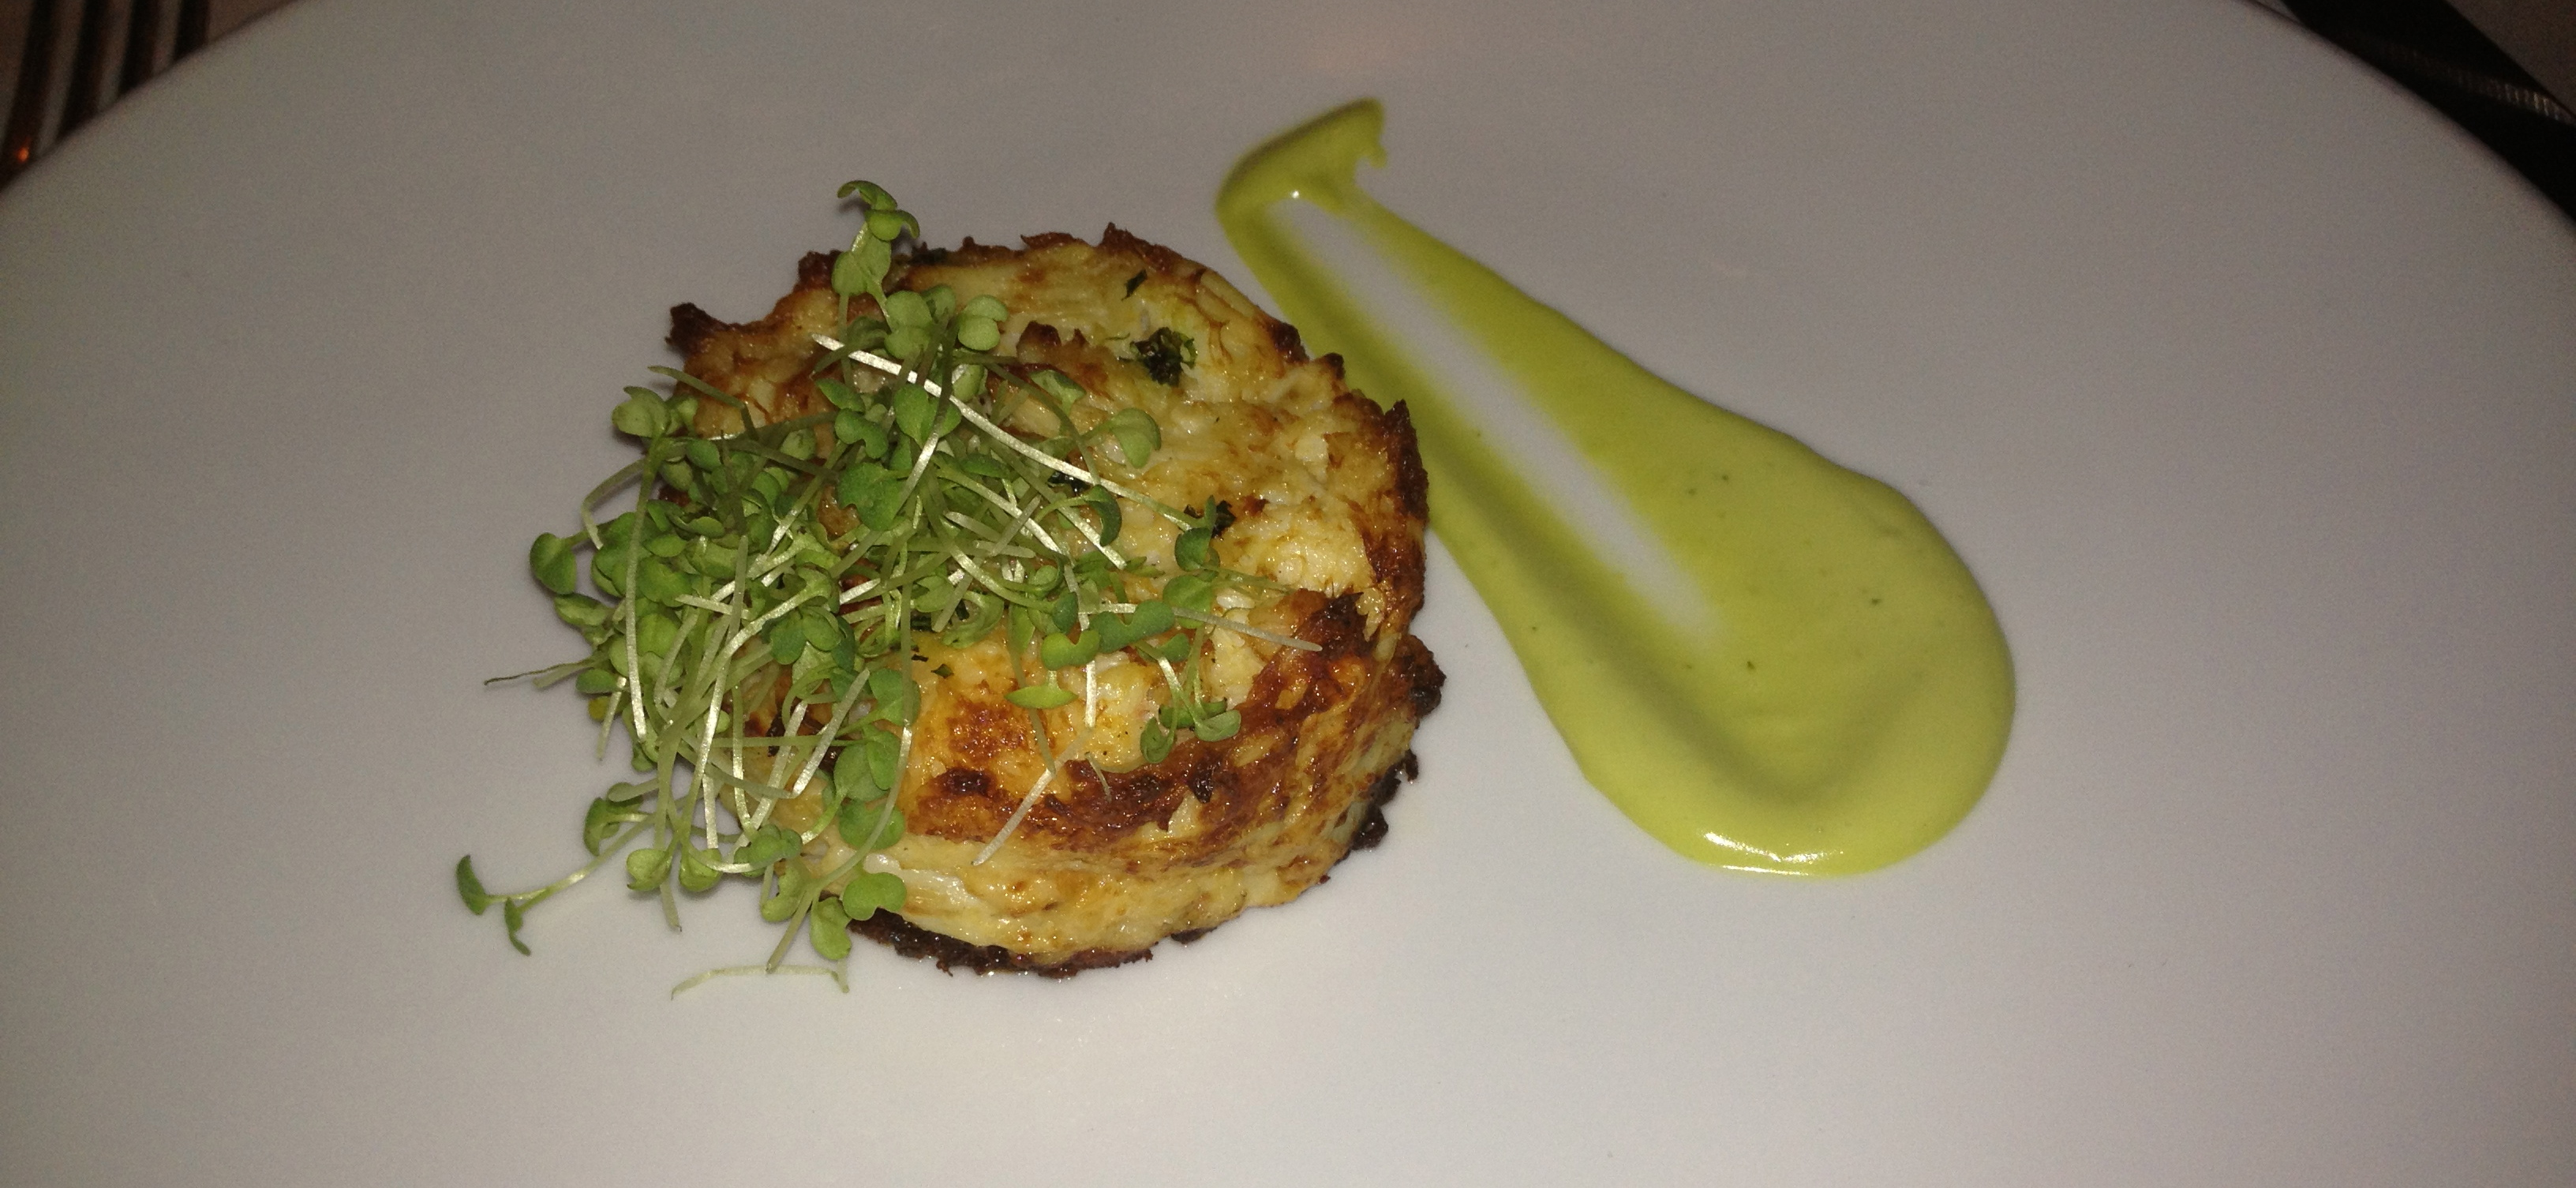 Crab and lobster cake.